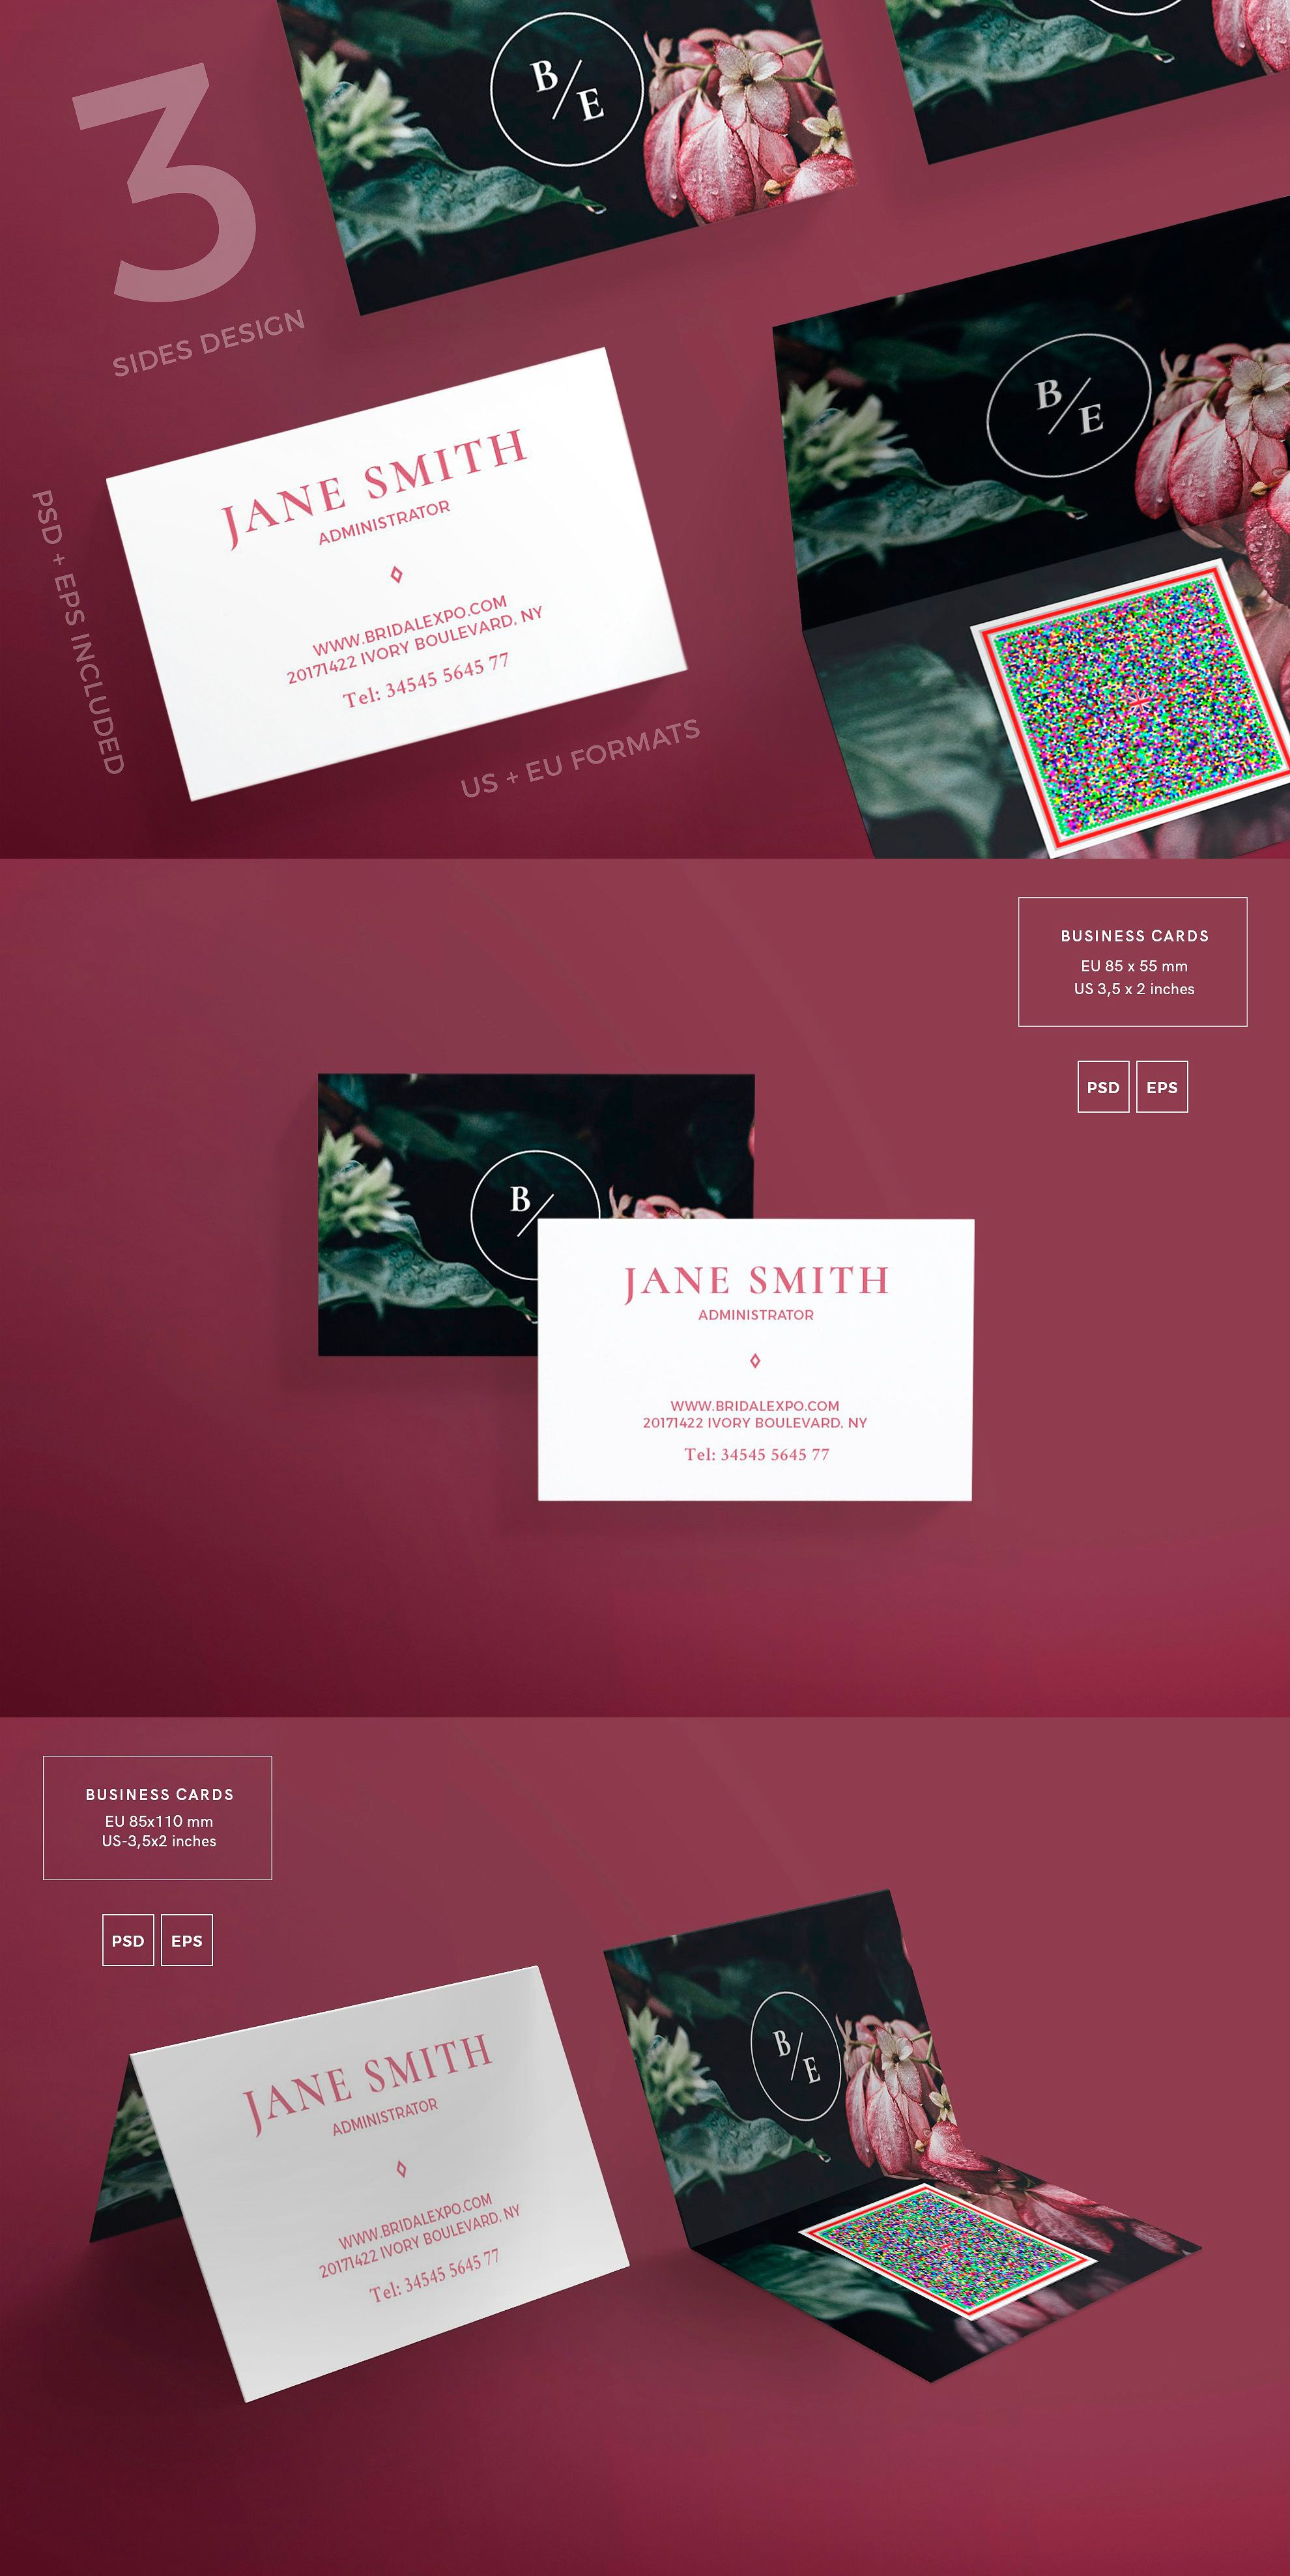 Business Cards Template | Bridal Expo PDF, JPG | Business Card ...